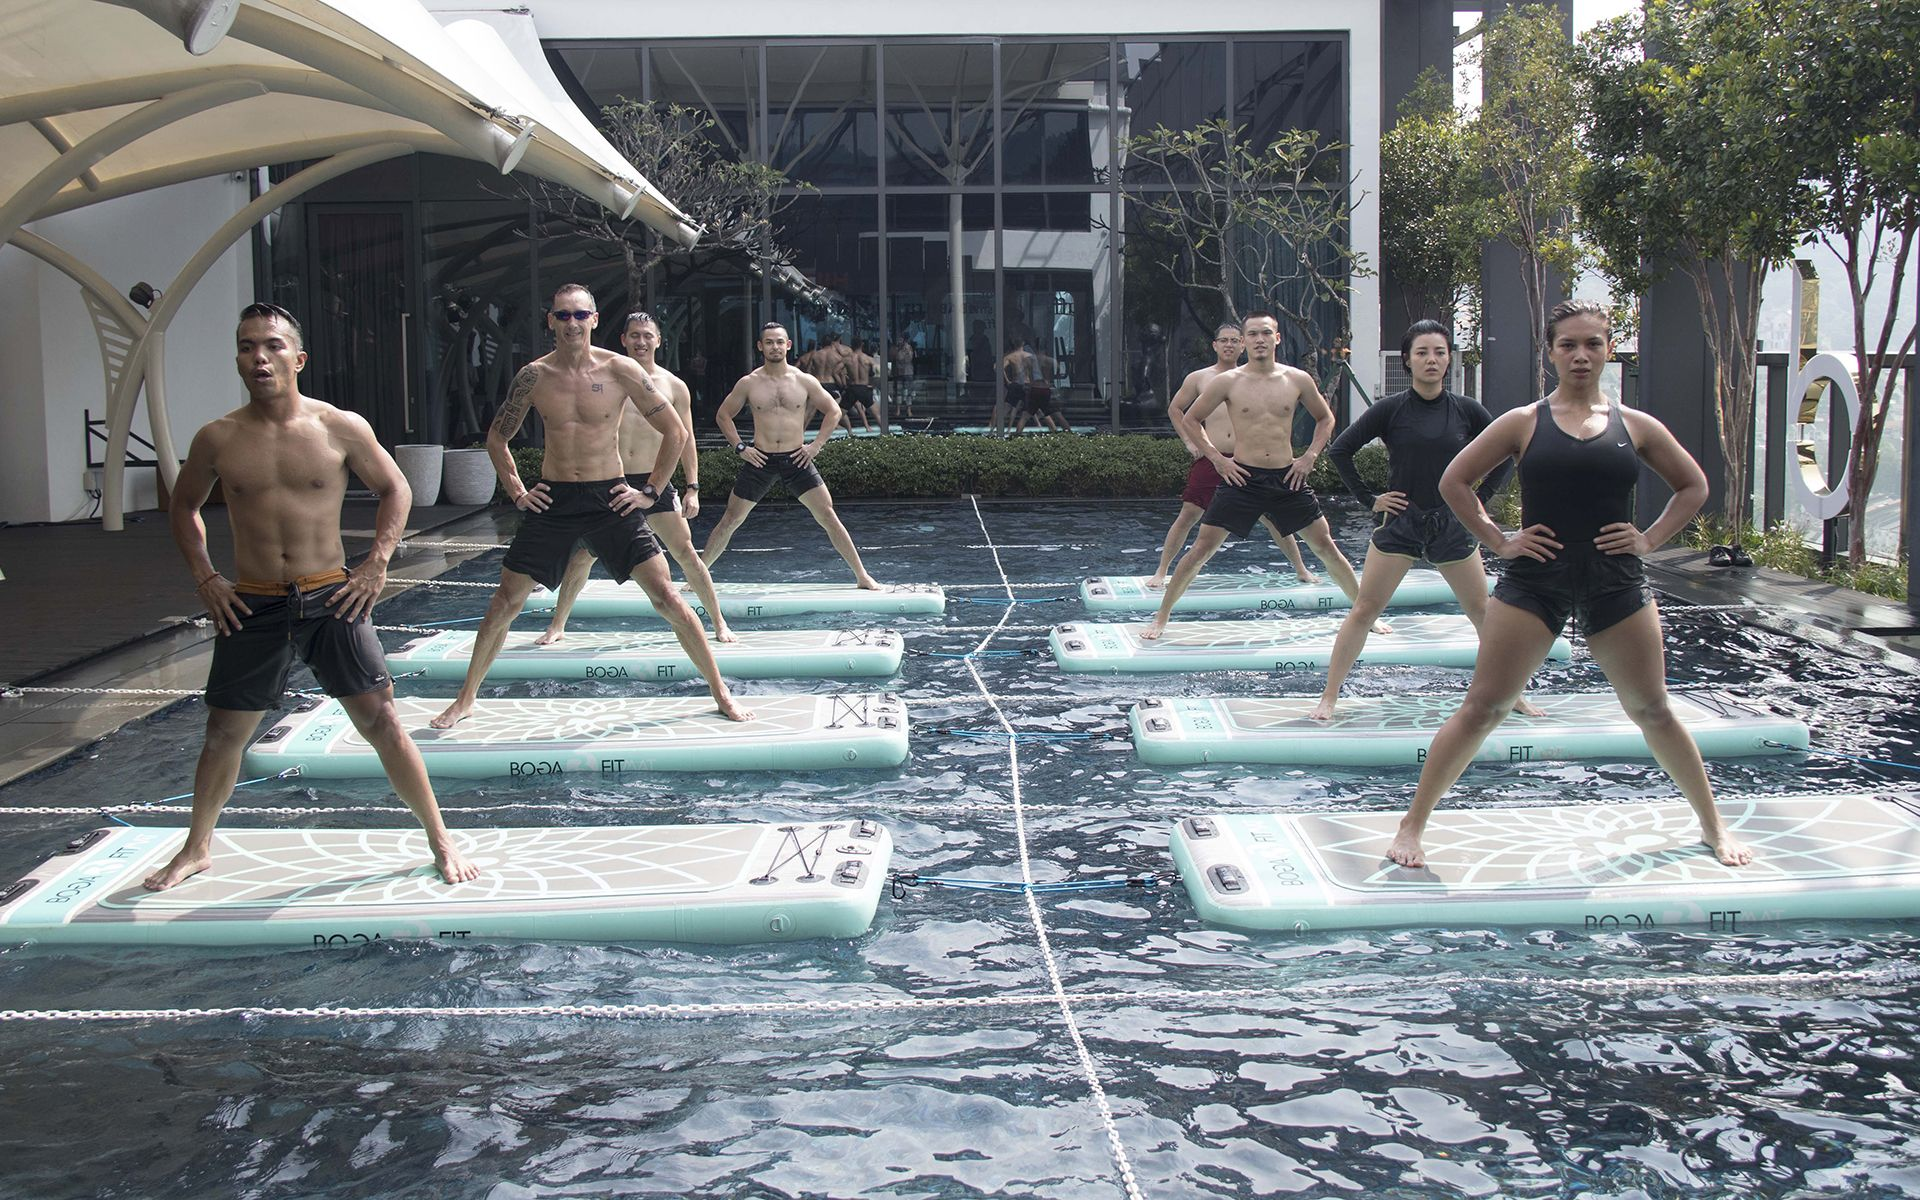 Watch: Babel Fit's Pool-Based Boga Workout Worth Getting Wet & Wild For